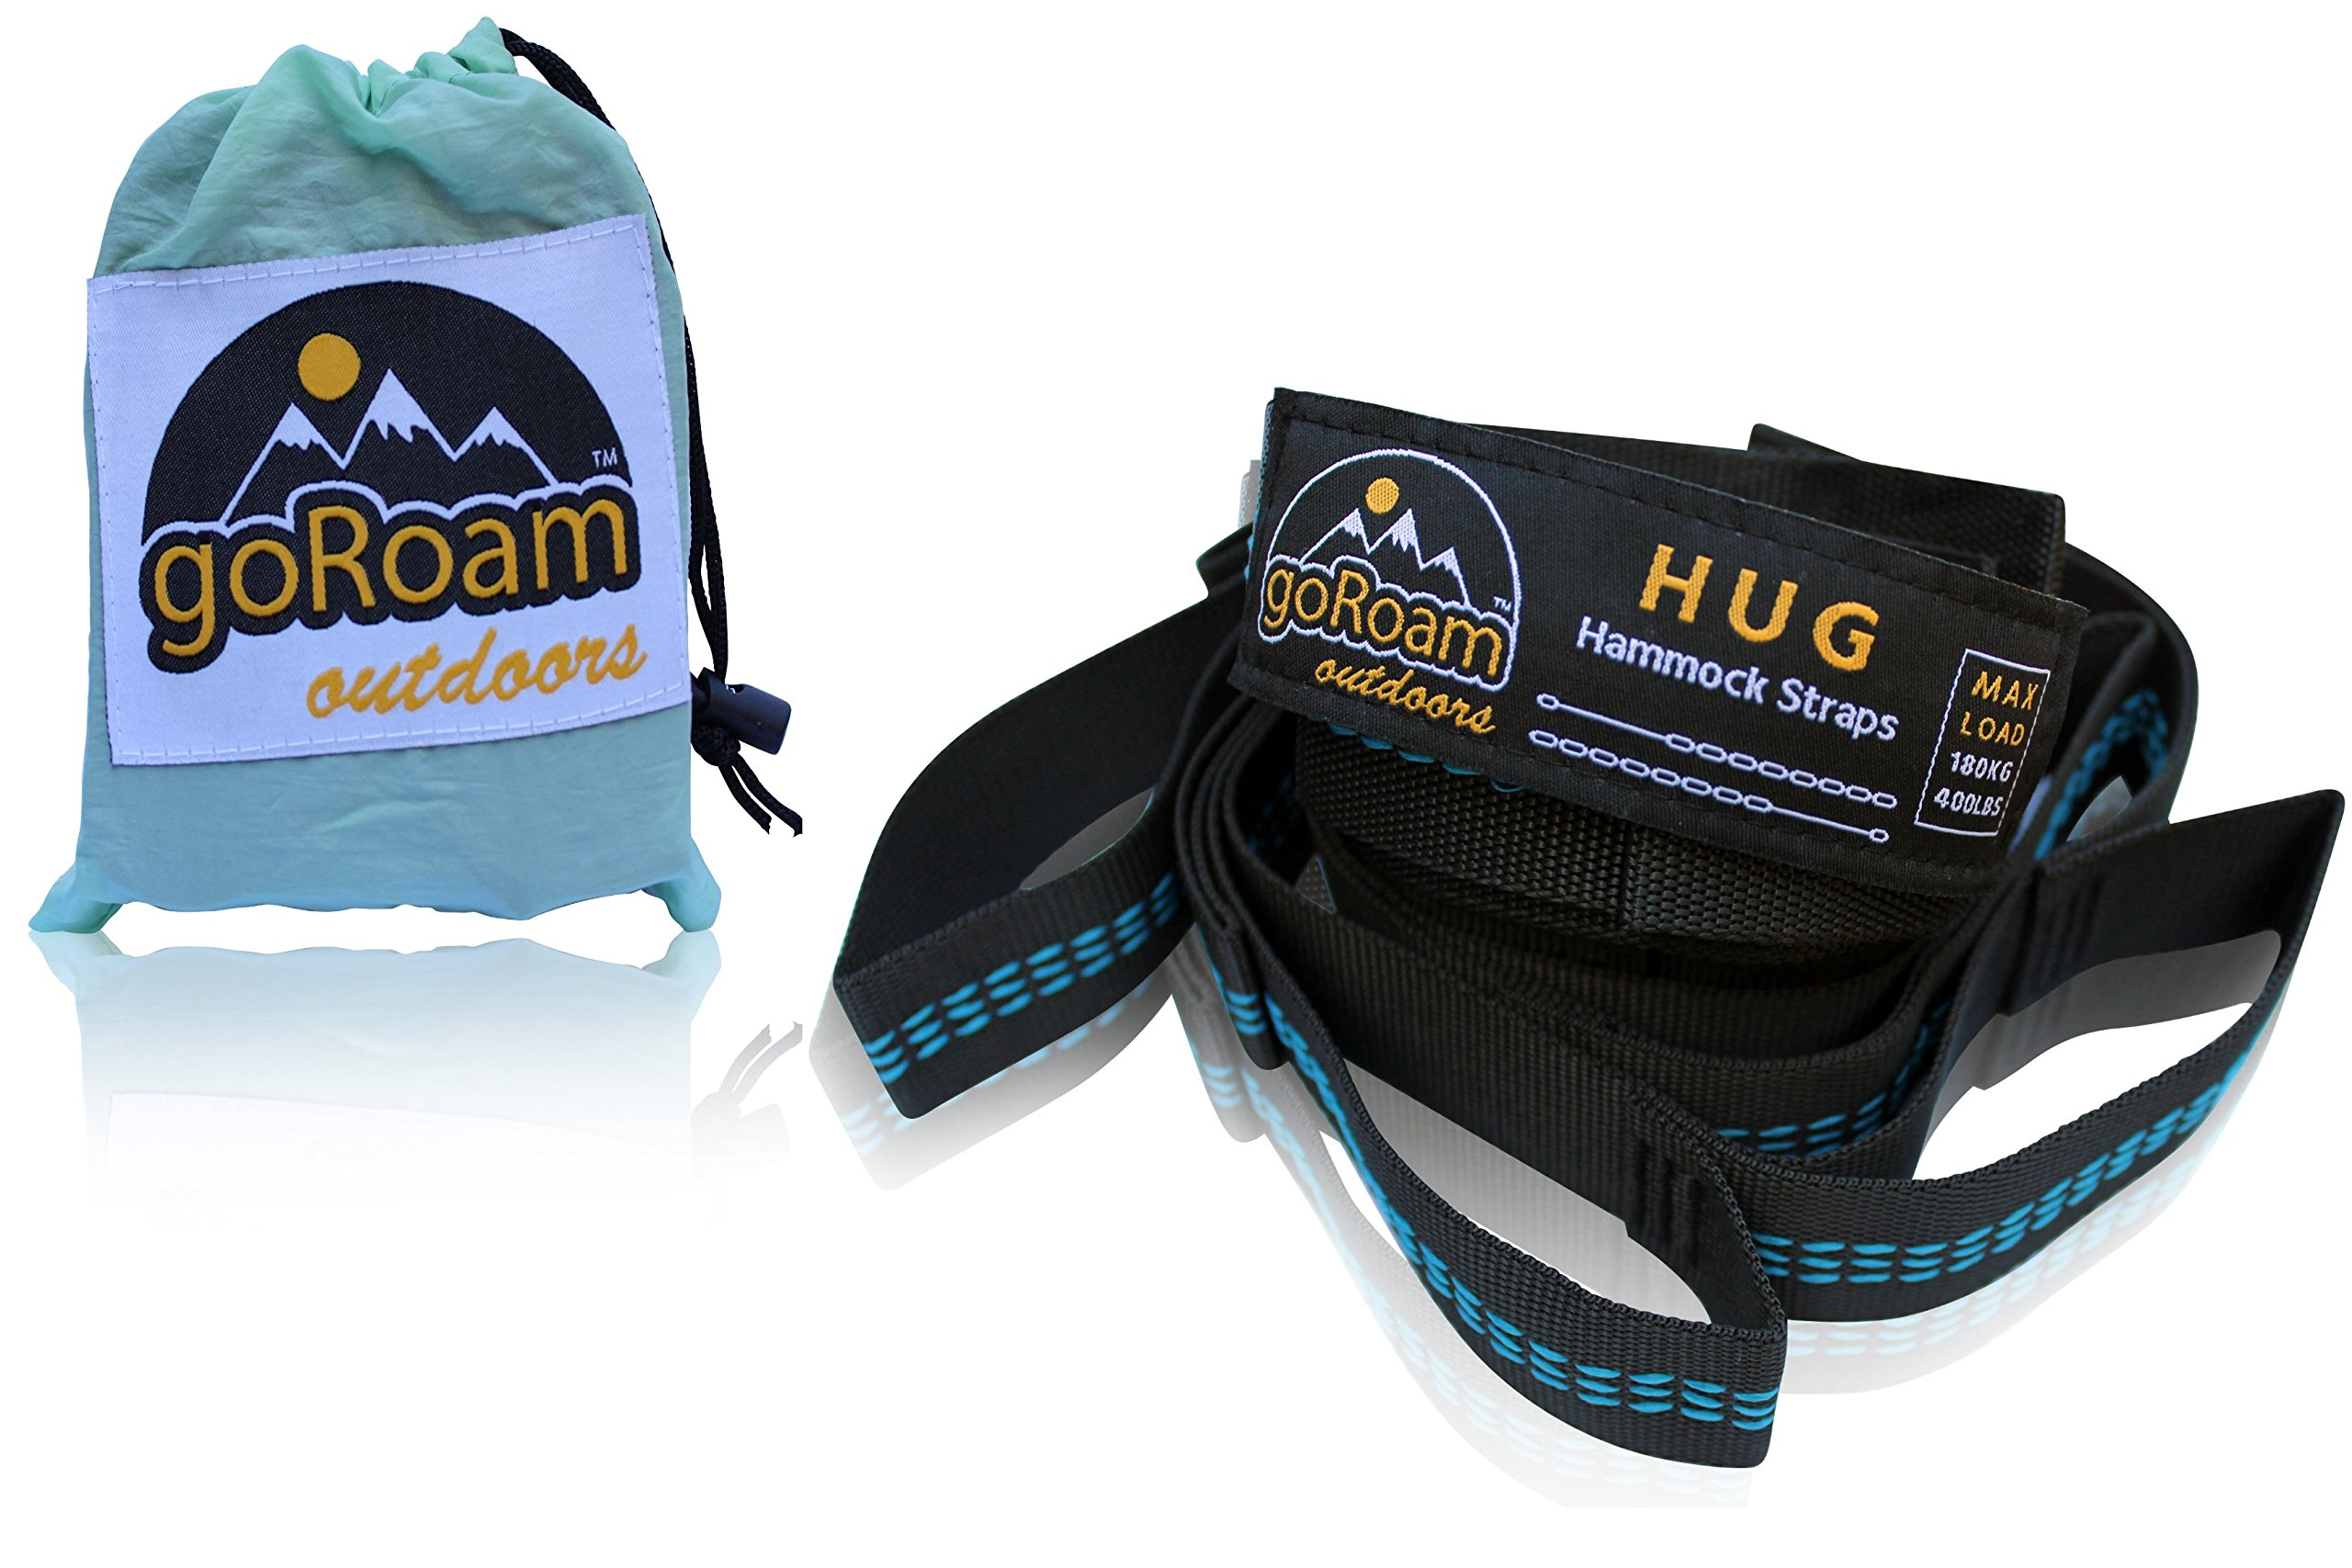 goRoam Outdoors HUG Hammock Straps Set Plus Carry Pouch. Strong Non-Stretch Polyester with 8 Loops for Fast & Easy Setup. Max load 400lbs/180kg Per Strap. (Black & Blue, 8 Loop Strap Set) by goRoam Outdoors